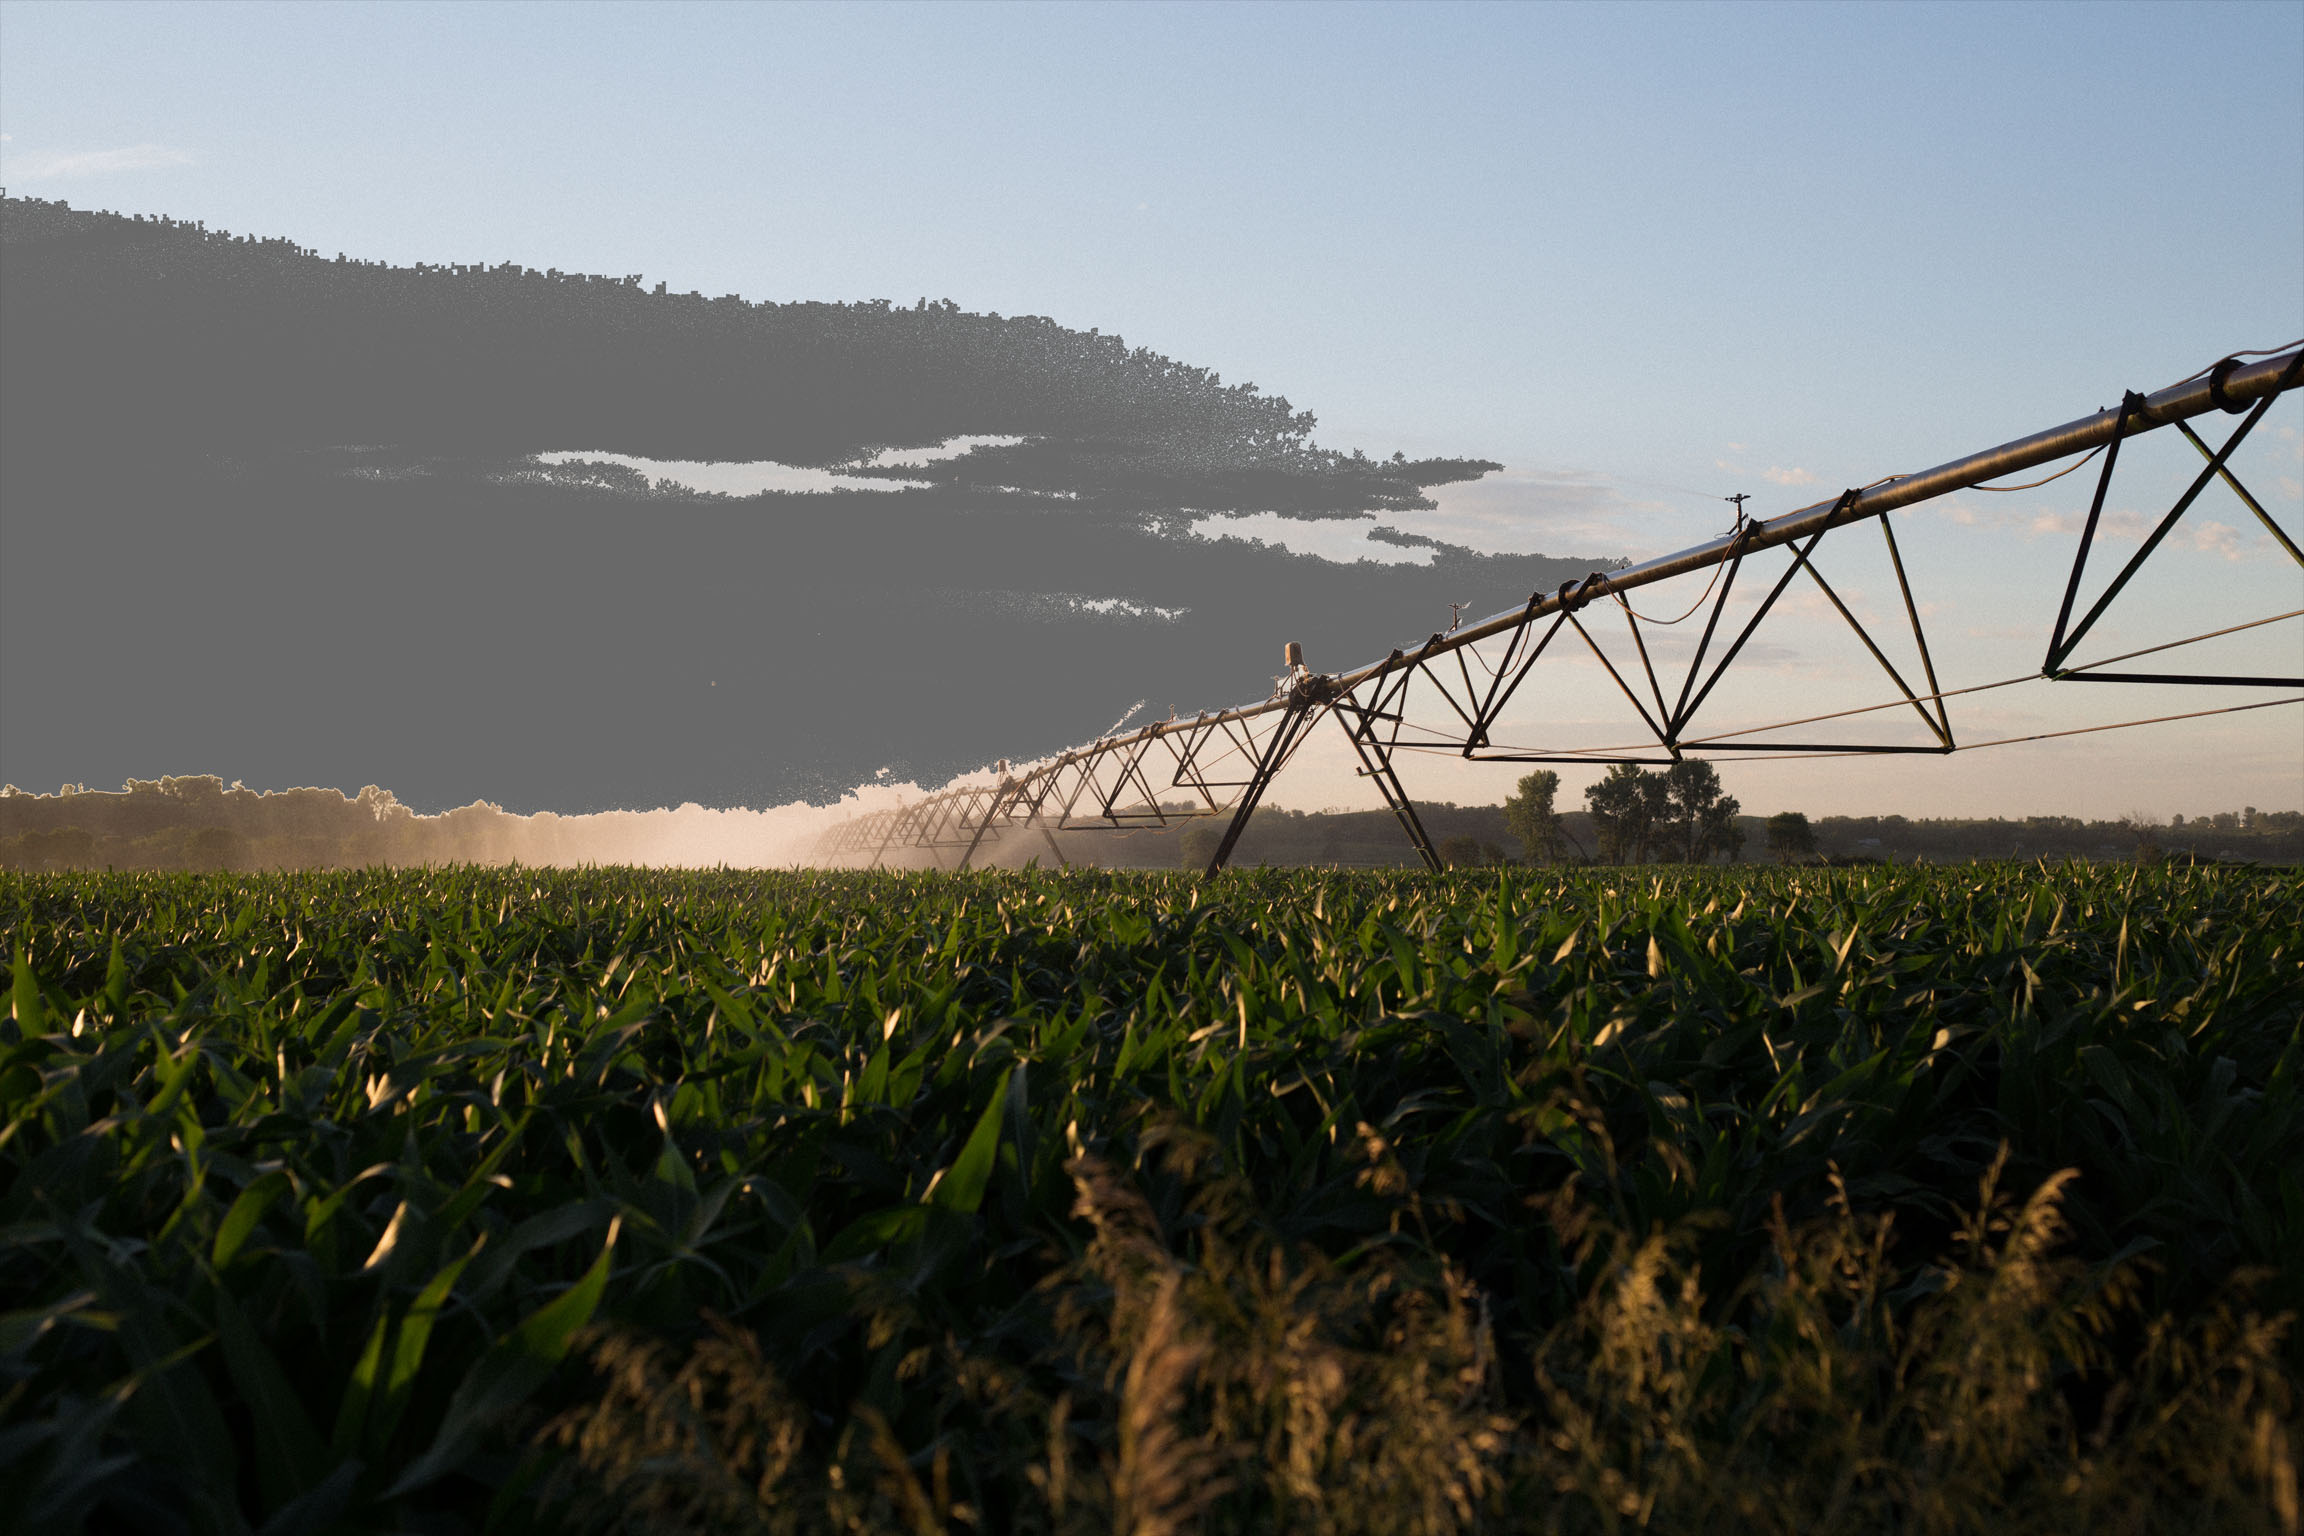 Field with Irrigation